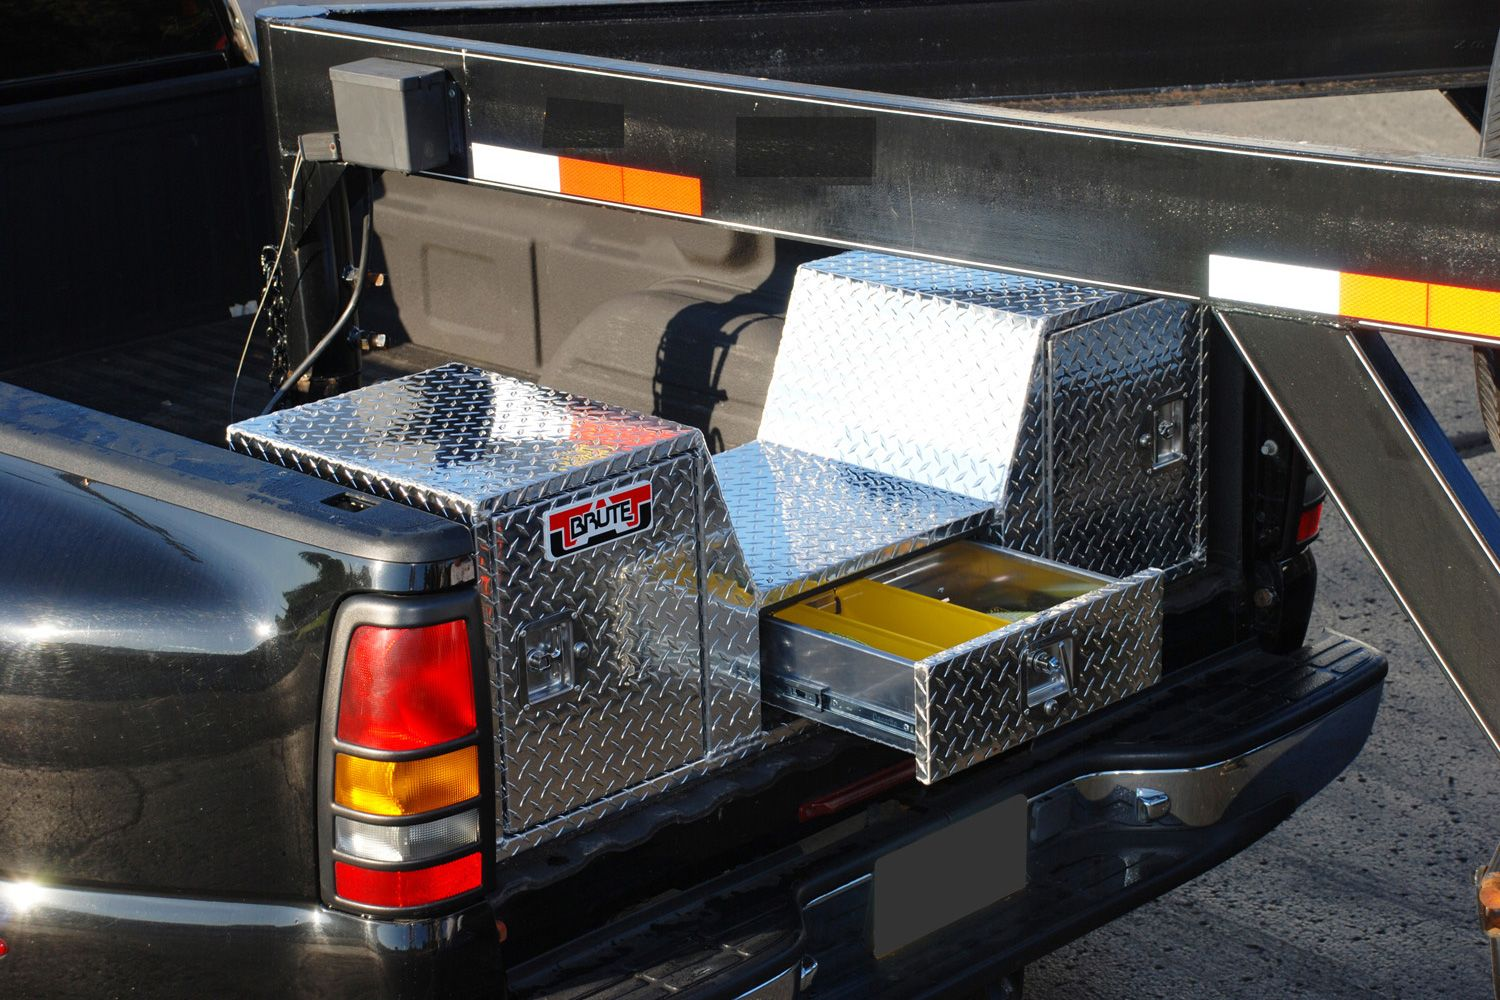 Unique Truck Accessories Rb257d Brute Goose Neck Double Doors 5th Wheel Tool Box Truck Tailgate Truck Bed Tool Box